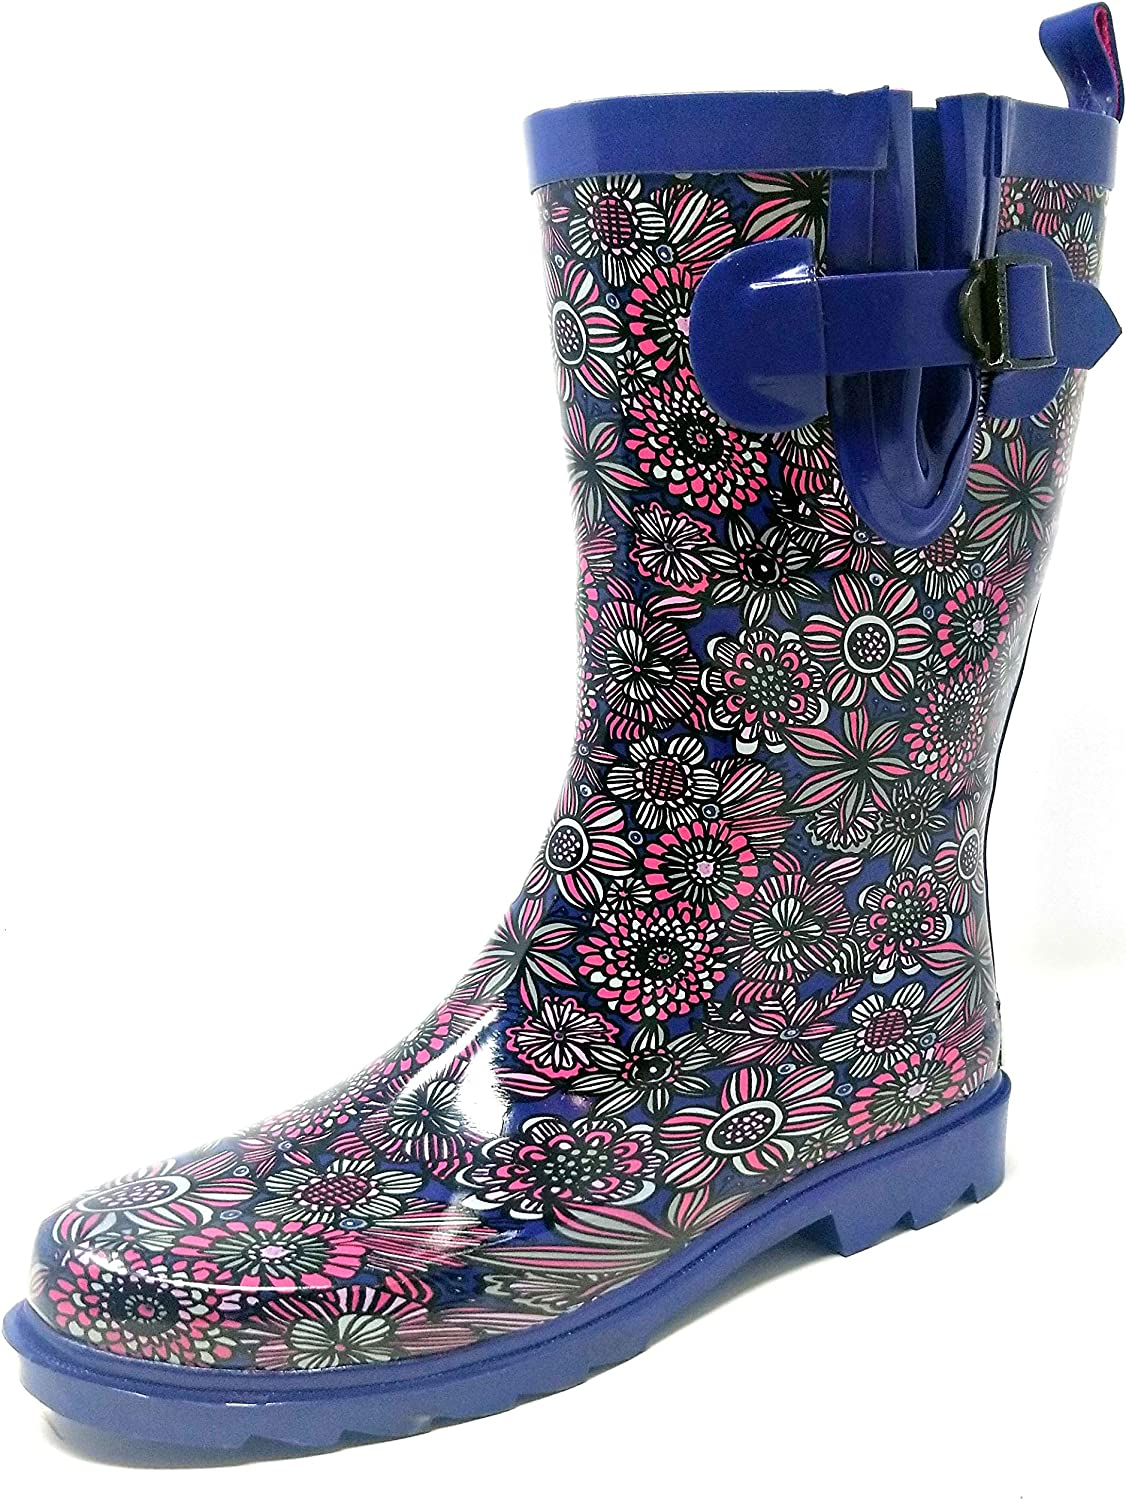 """Forever Young Women's Rubber Rain Boots - 11"""" Mid-Calf Rain Boots for Women, Waterproof Outdoor Garden Boots, Colorful Designs Wellies"""